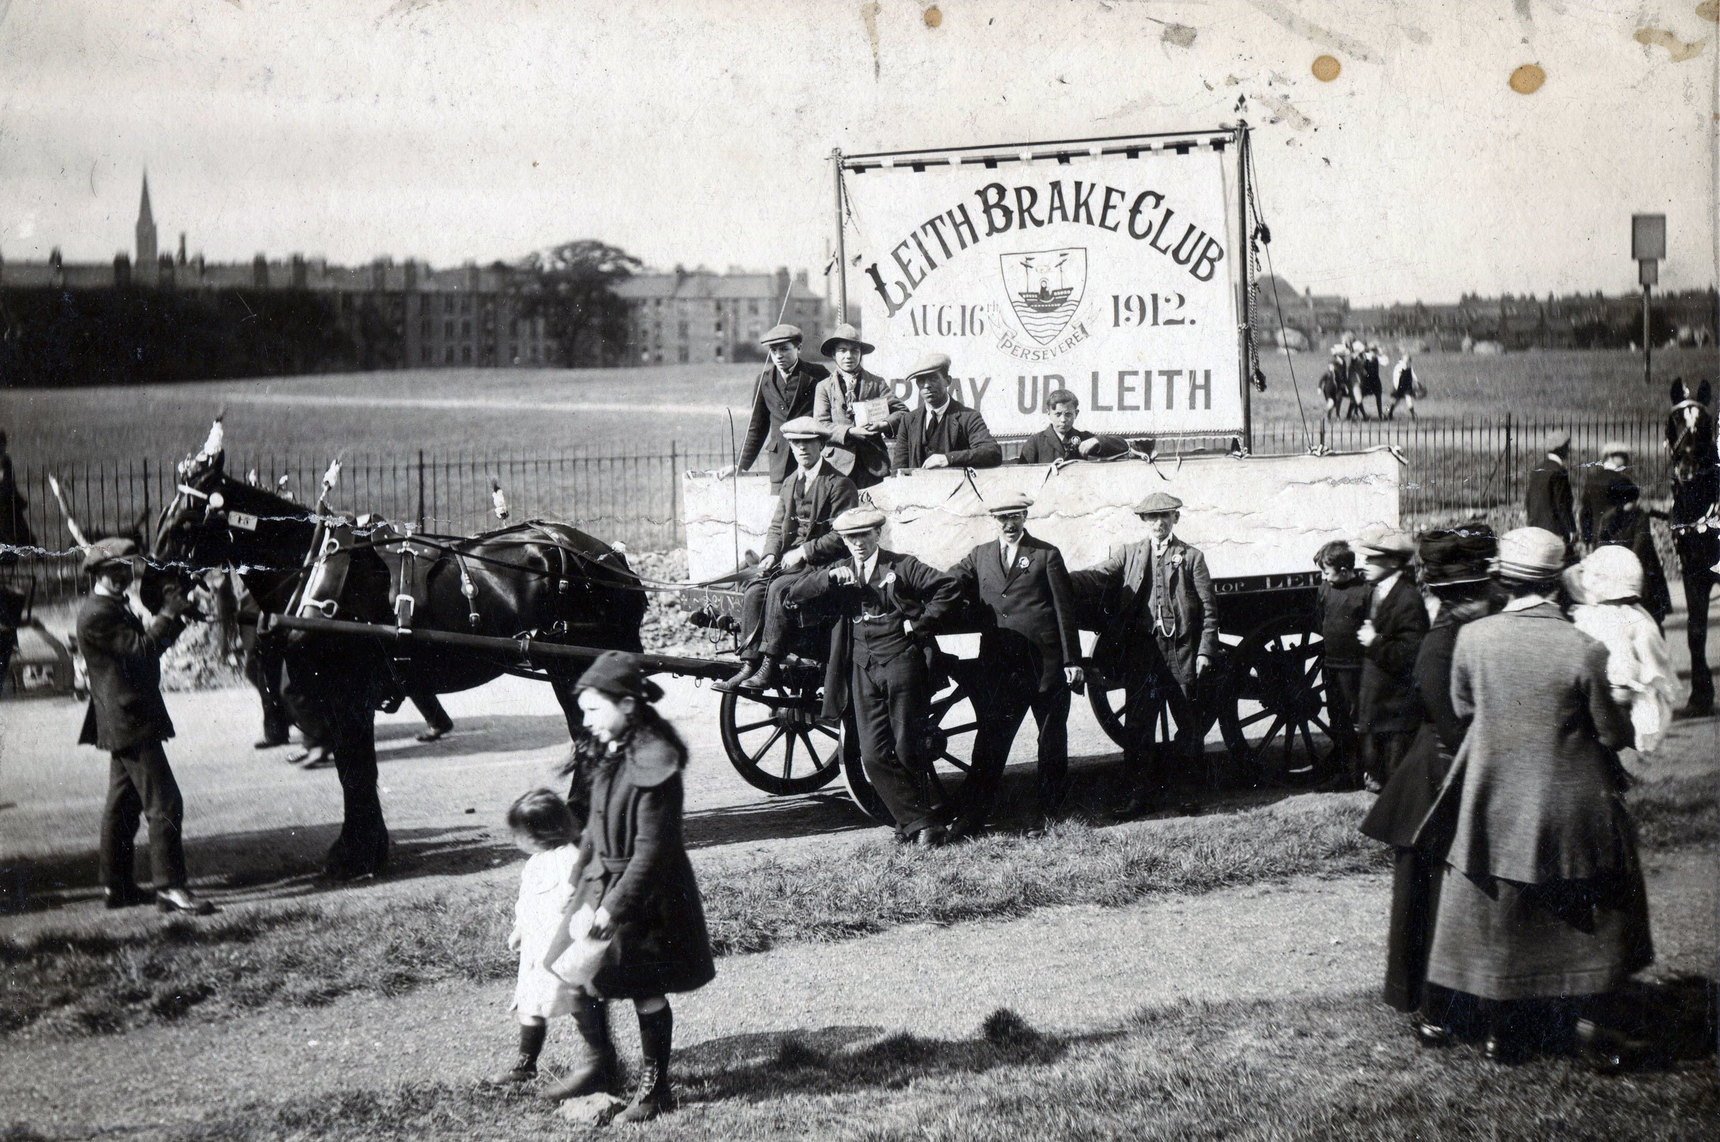 Leith Brake Club Float At Edinburgh Infirmary Pageant 1921